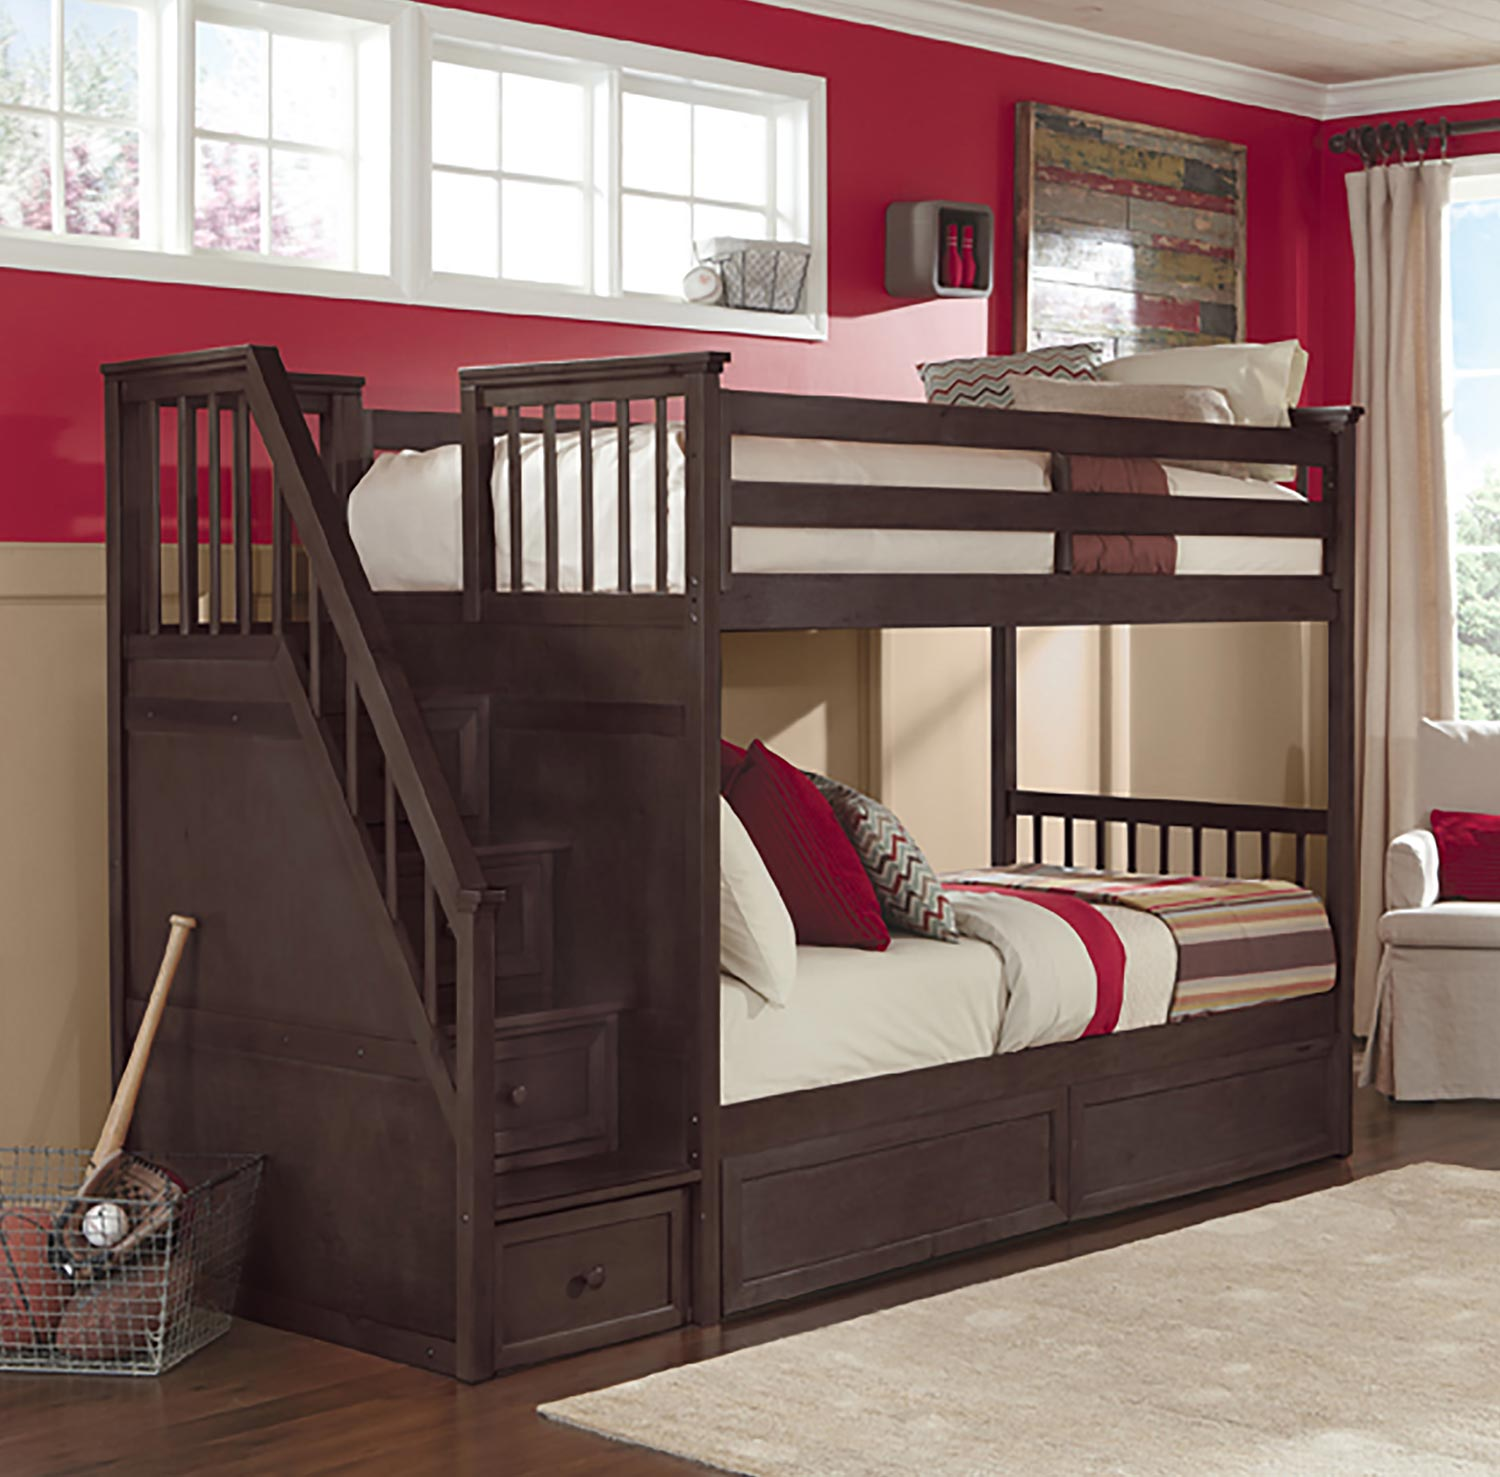 NE Kids School House Stair Bunk Bed with Storage - Chocolate Finish